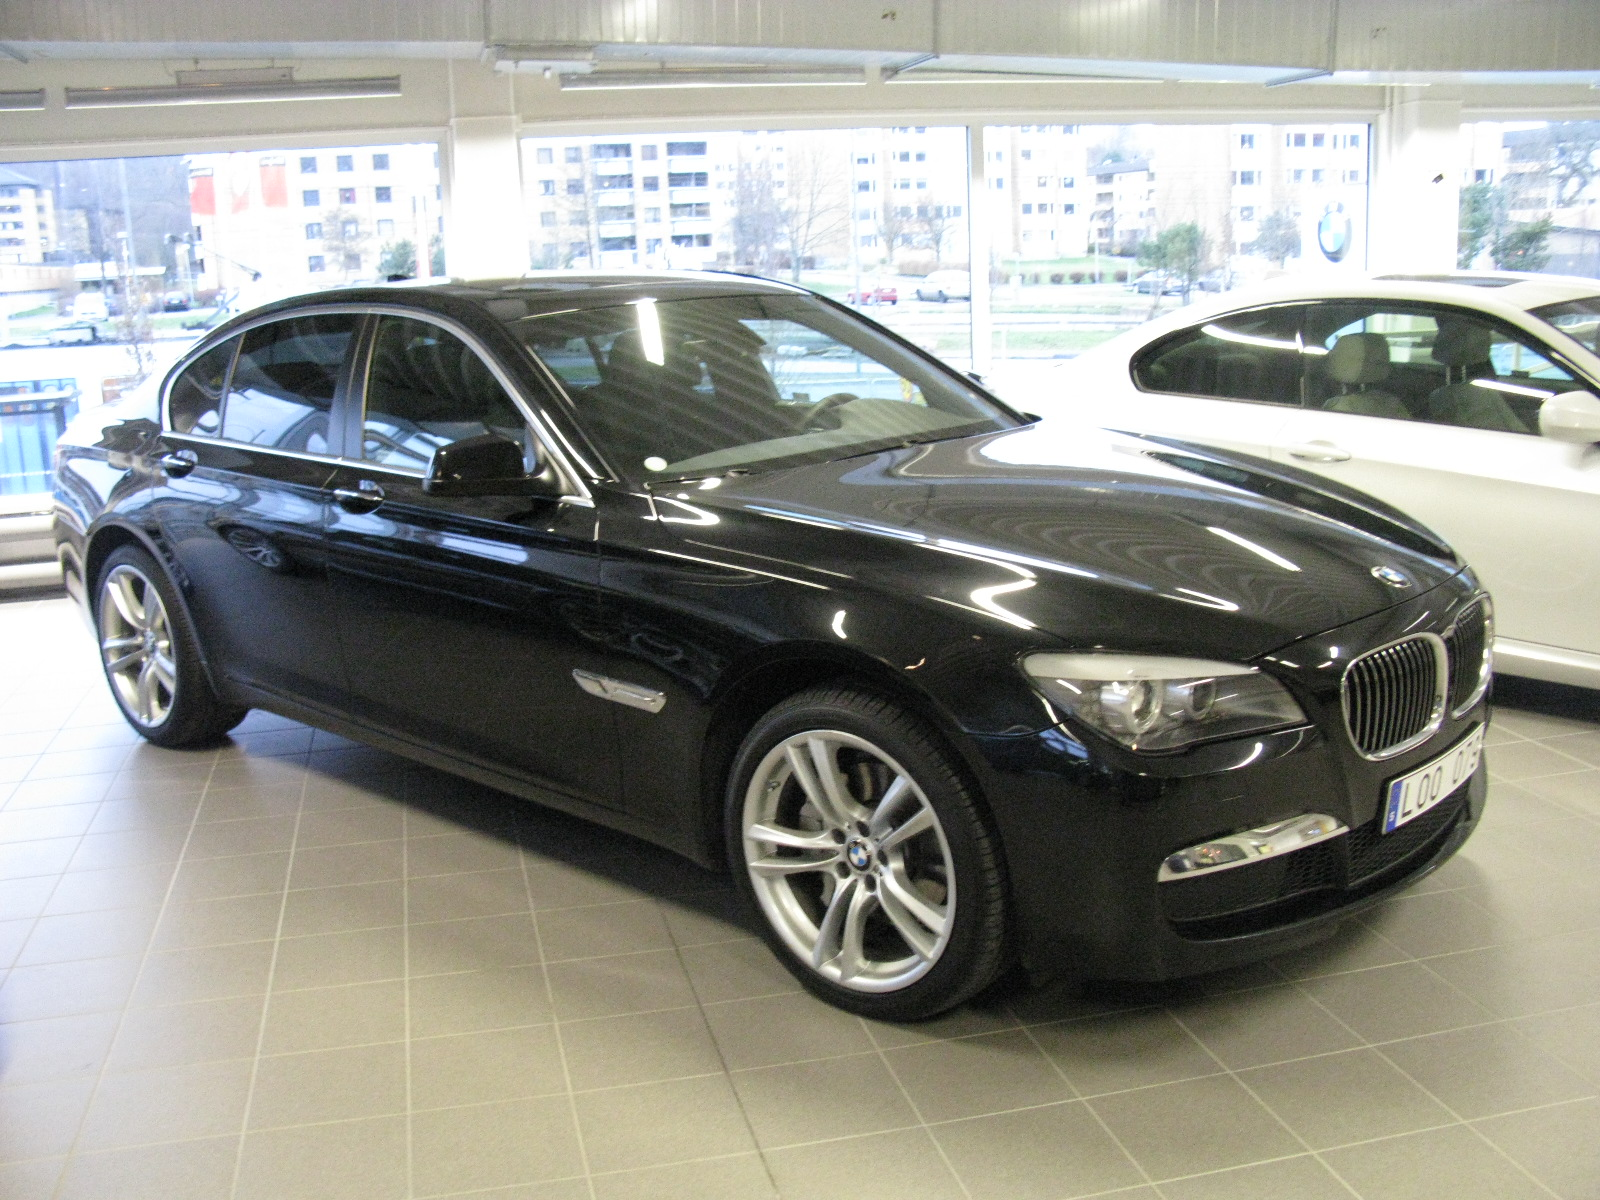 BMW 740d M Sport F01 | Flickr - Photo Sharing!